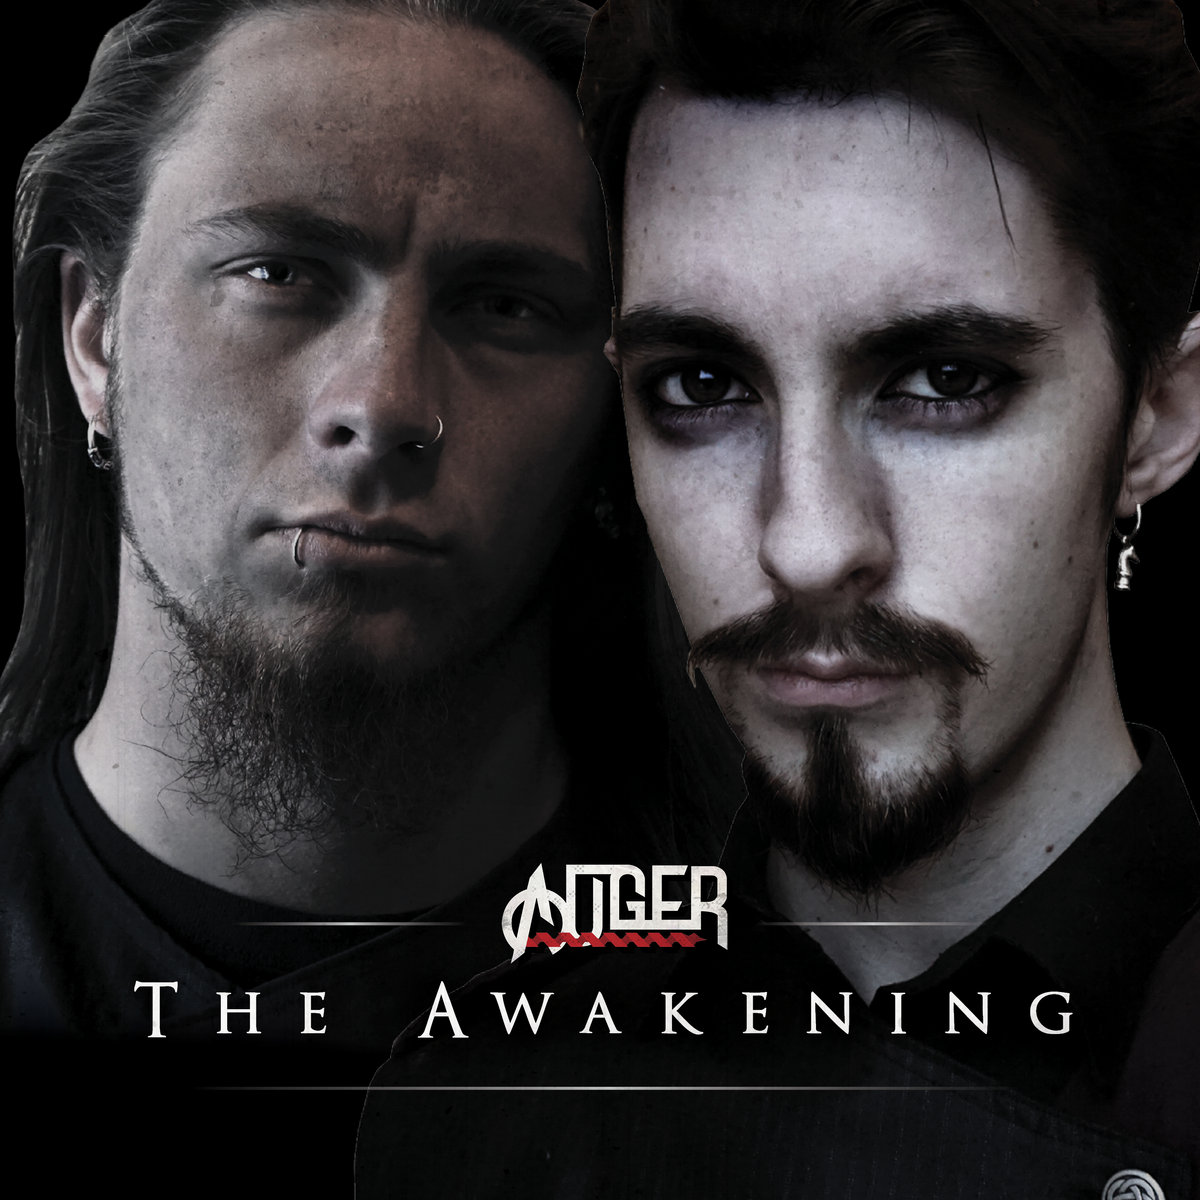 Image result for auger the awakening